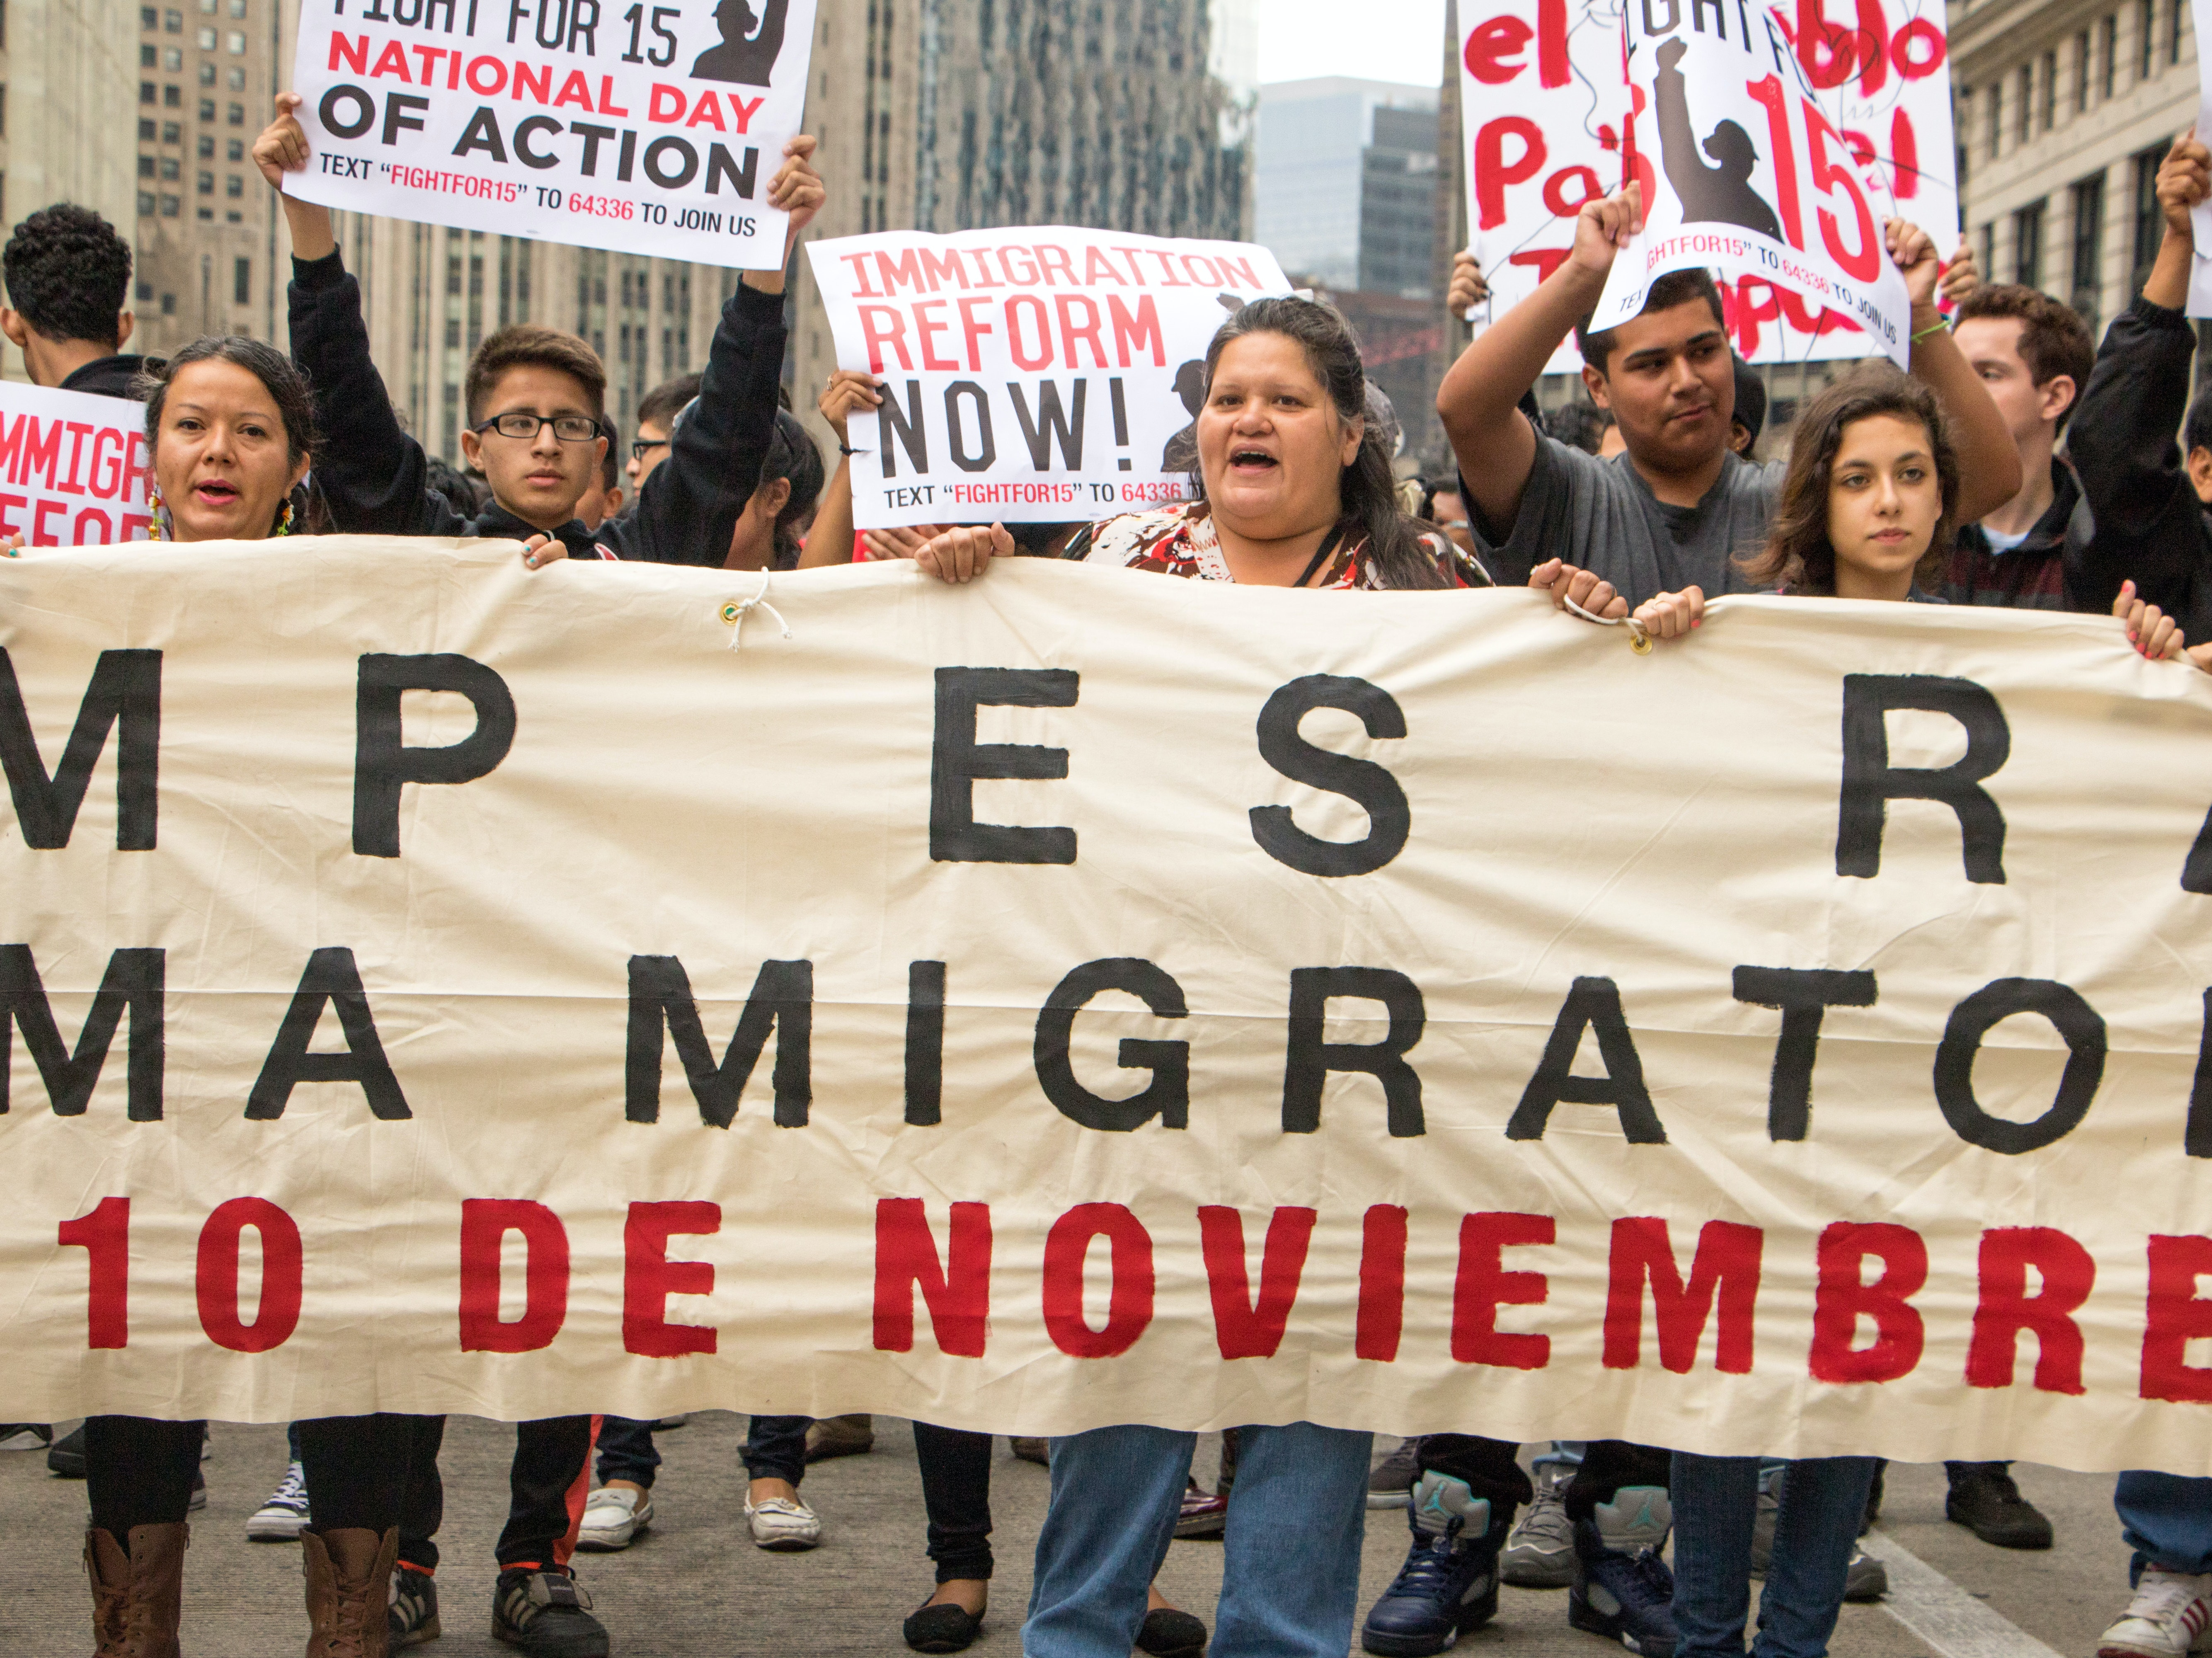 Fight for $15 leads a youth march for immigration reform